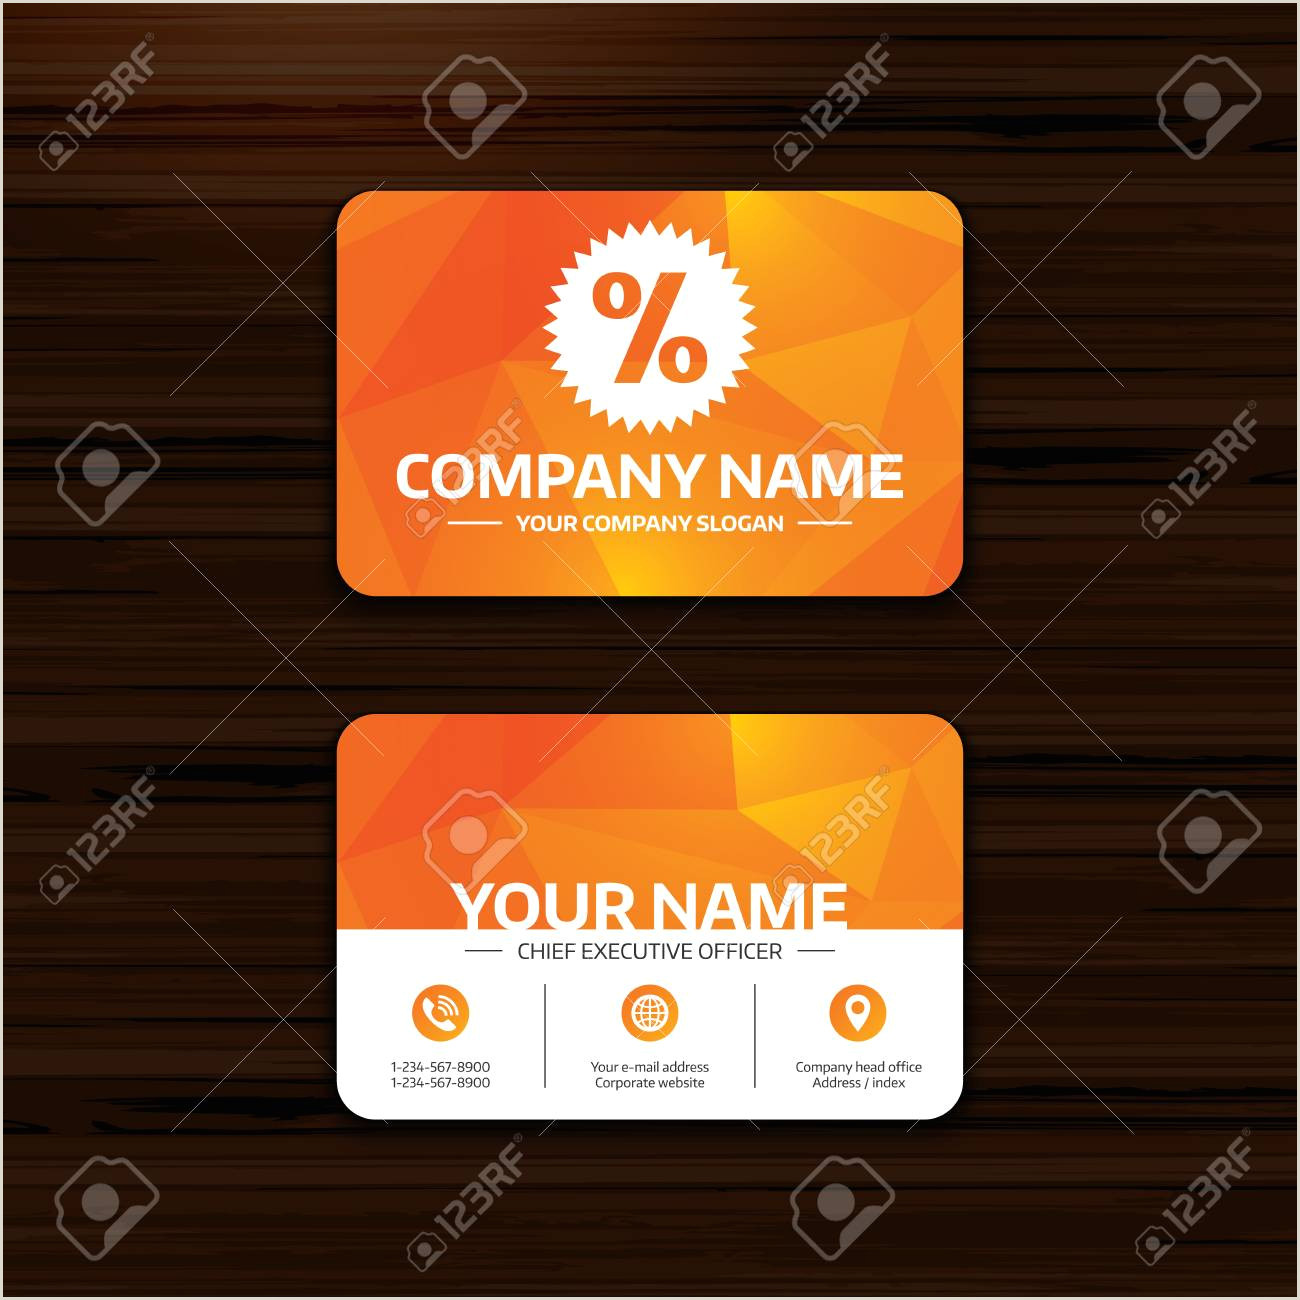 Phone Icon For Business Cards Business Or Visiting Card Template Discount Percent Sign Icon